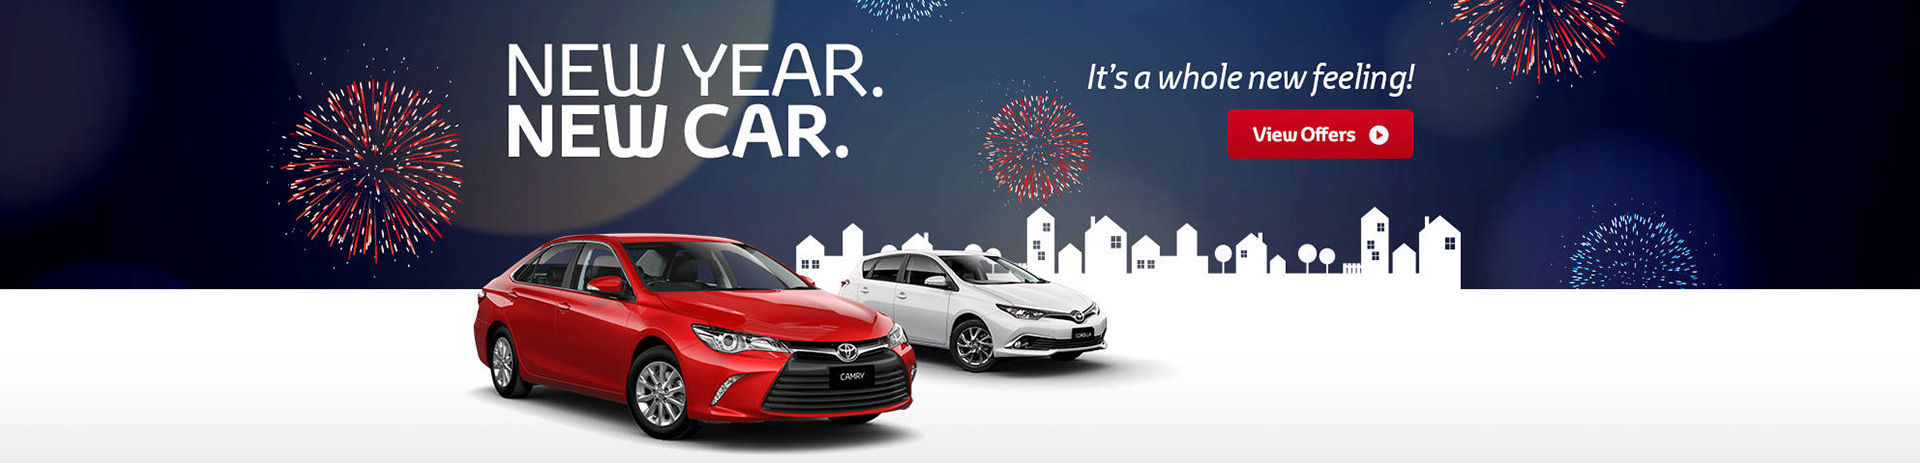 Toyota National Offer - New Year. New Car